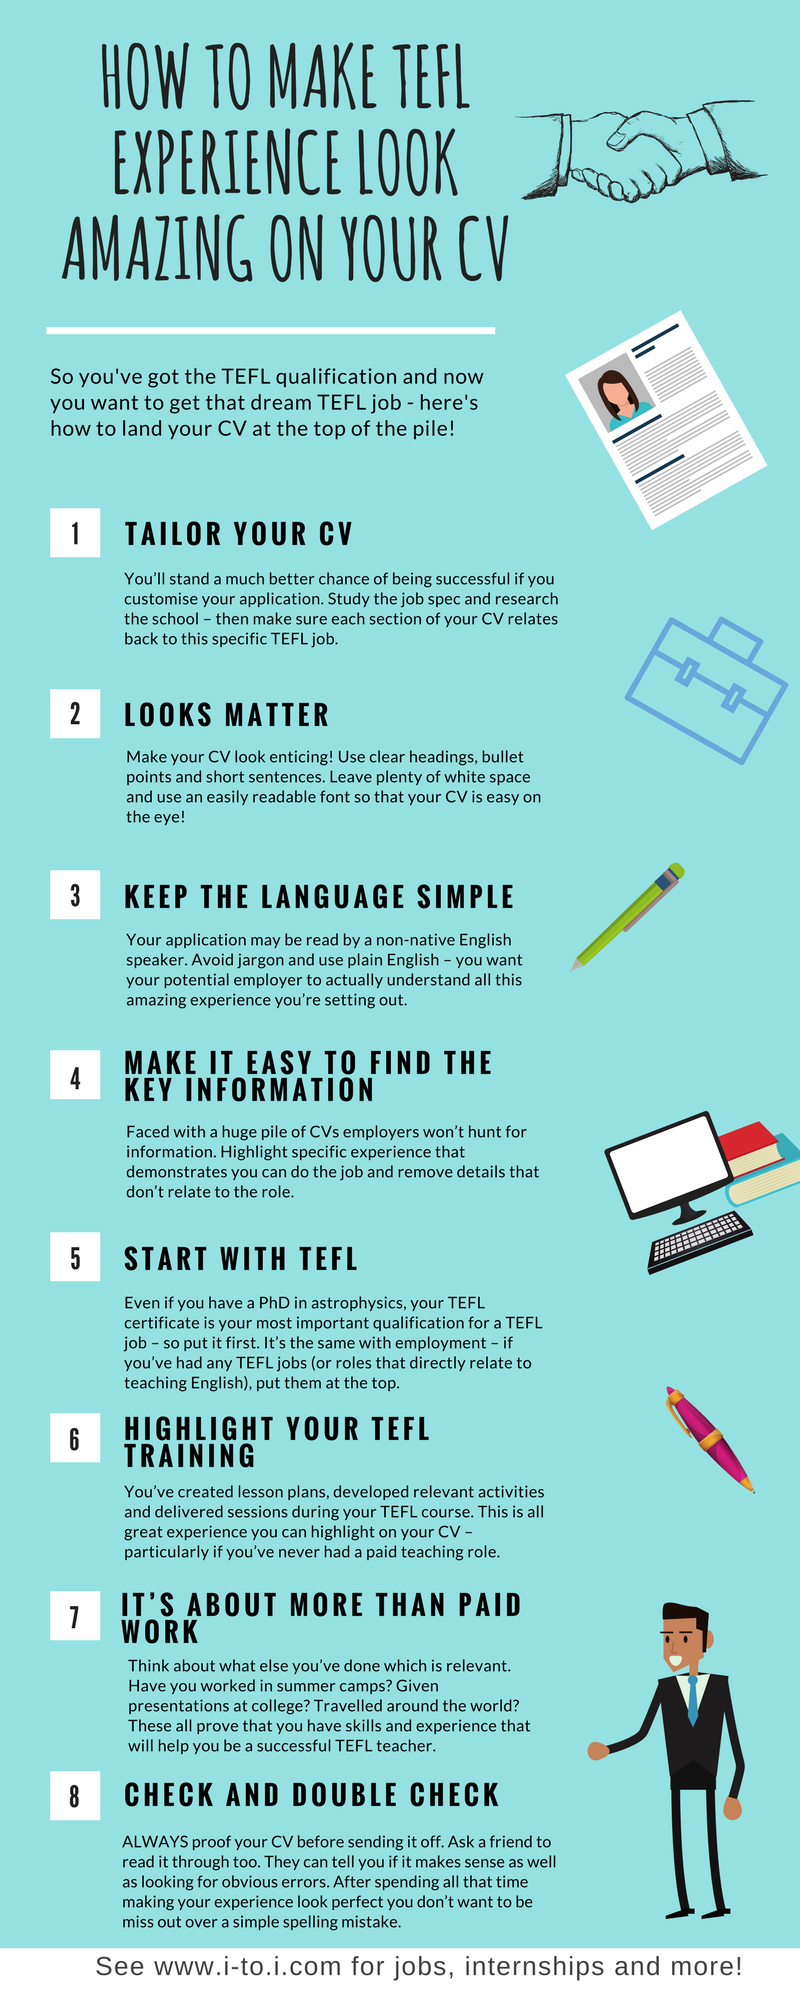 How To Make Tefl Experience Look Amazing On Your Cv I To I Tefl